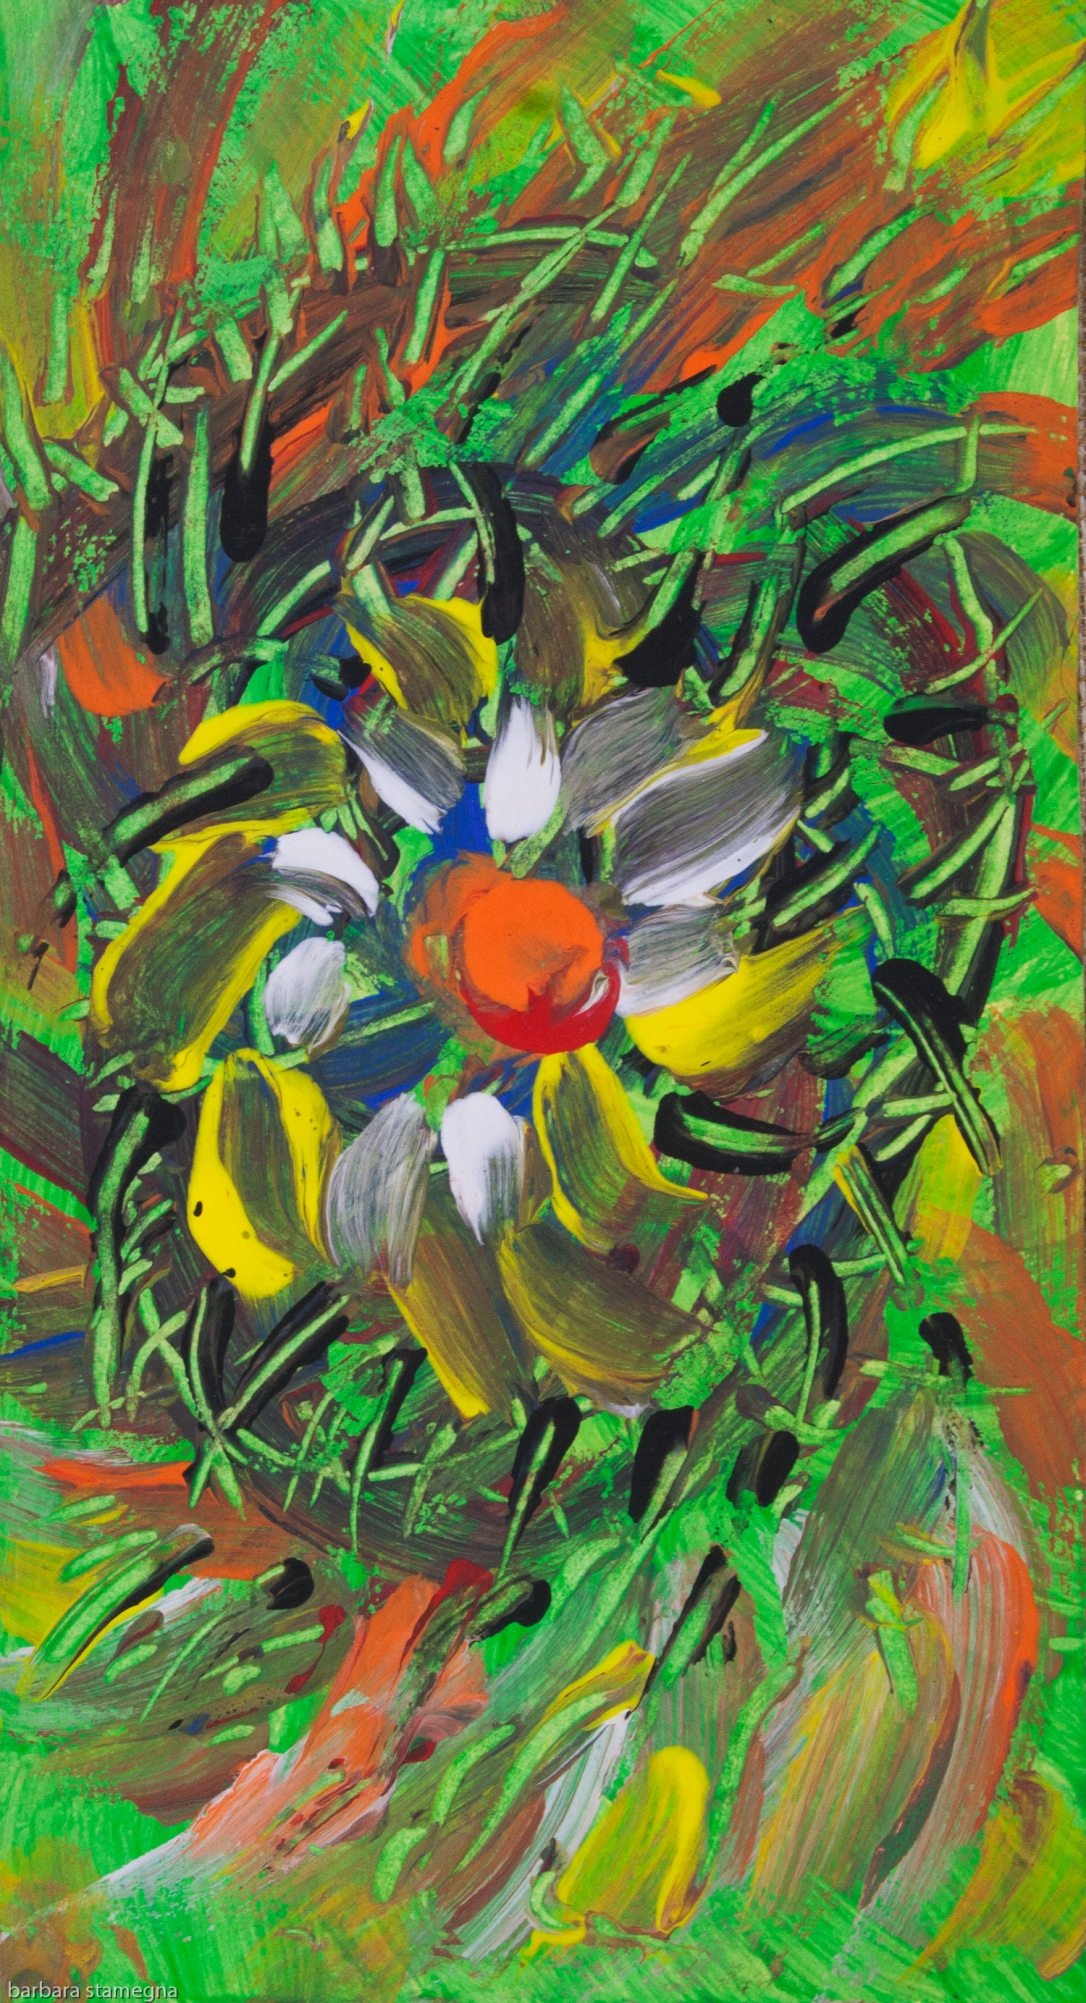 Abstract savage flower in meadow like image with irregular shapes and lines